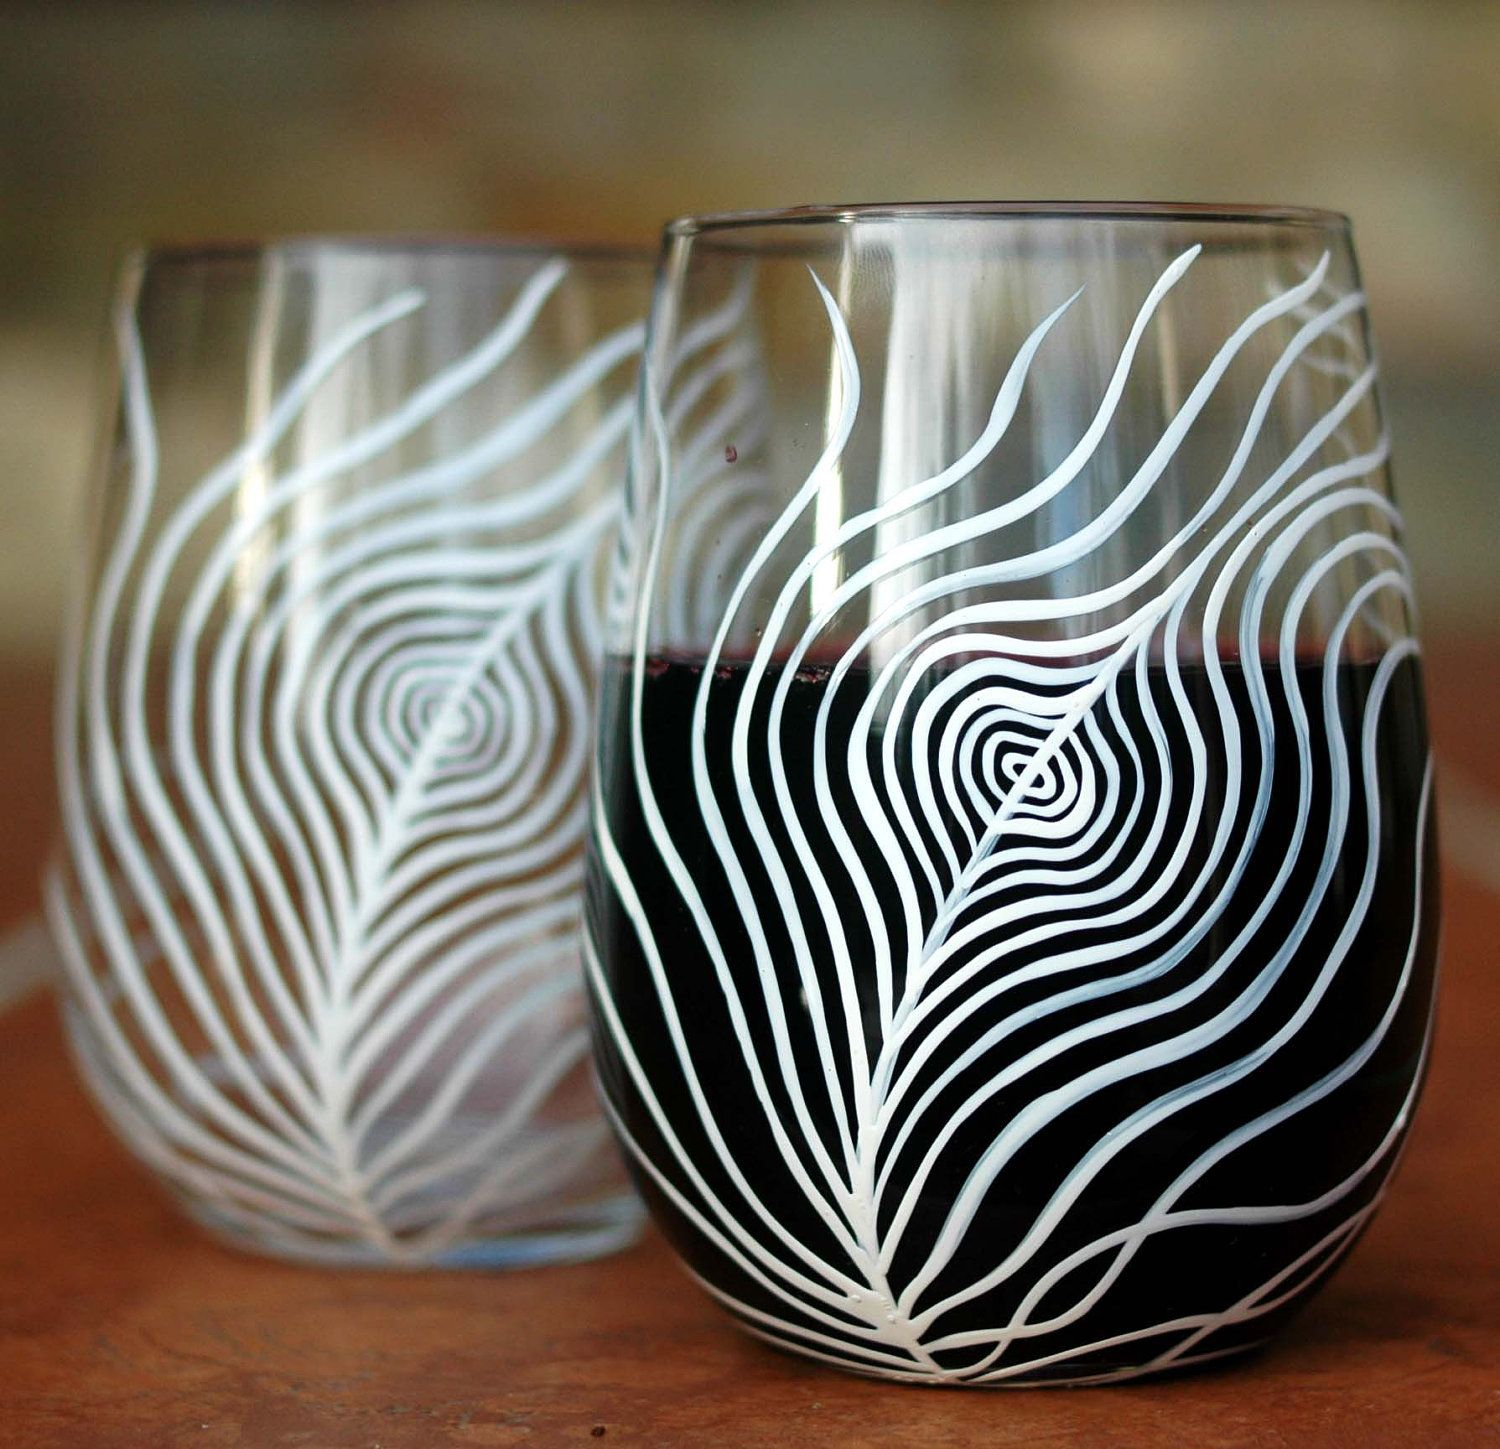 White Peacock Feather Stemless Wine Glasses. Hand-painted by Mary Elizabeth Arts